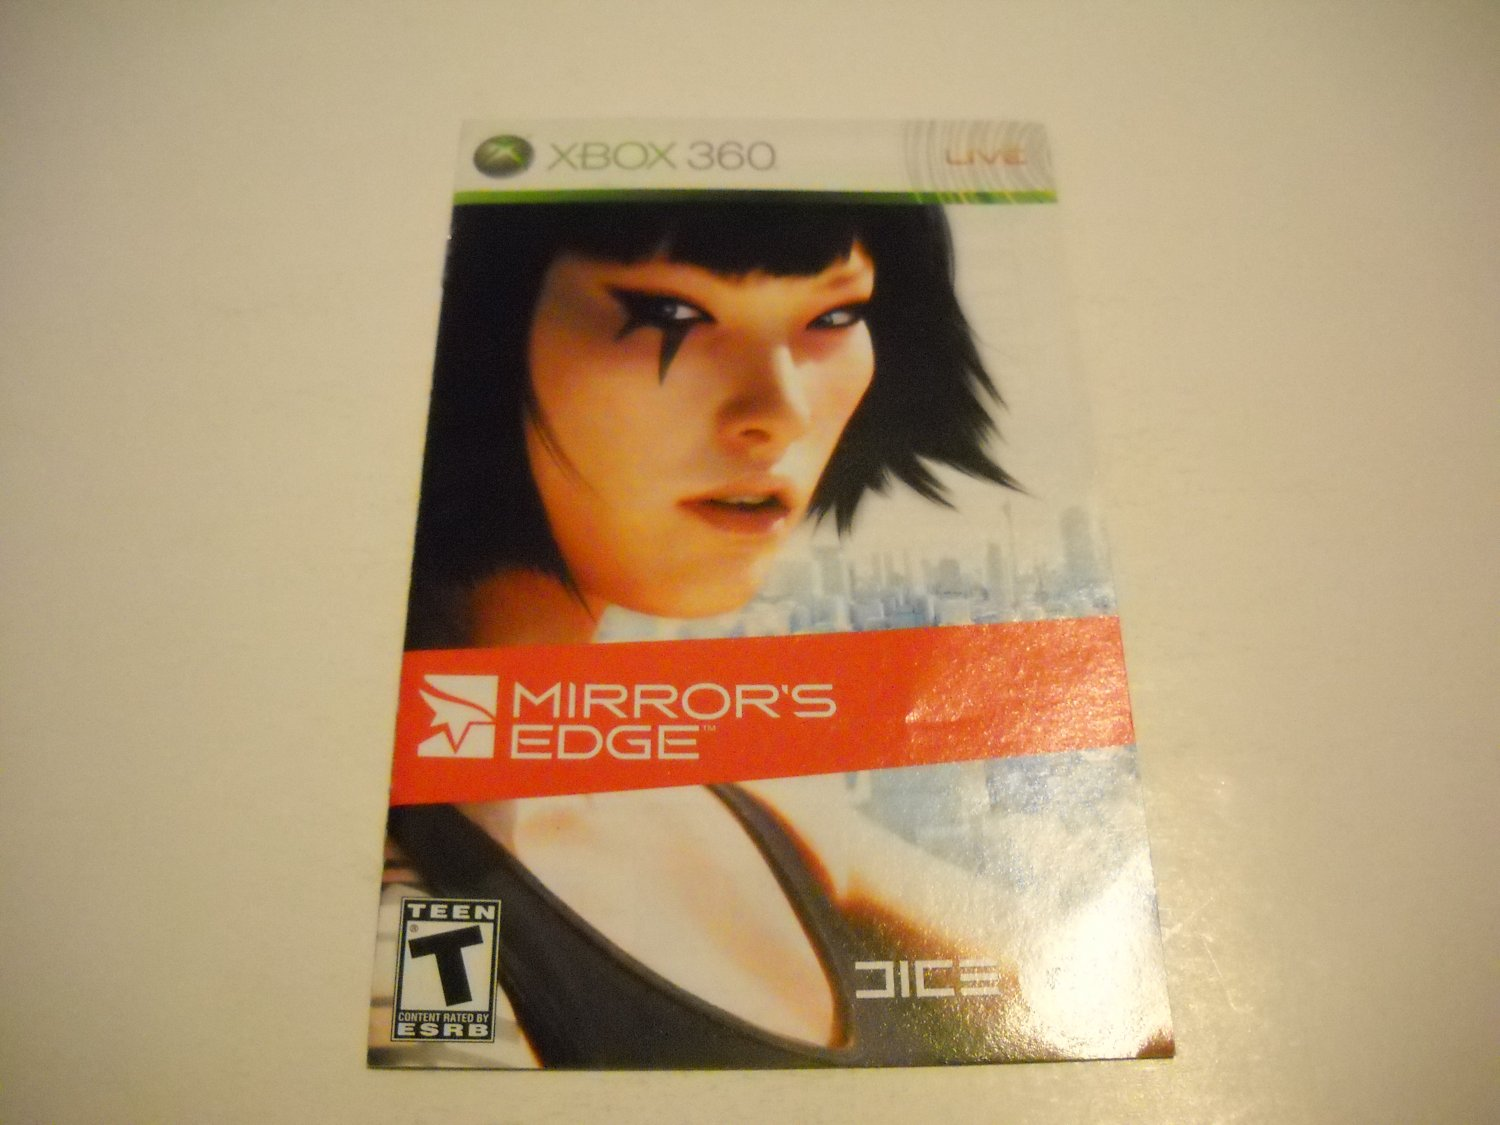 Manual ONLY ~  for Mirrors Edge   - Xbox 360 Instruction Booklet